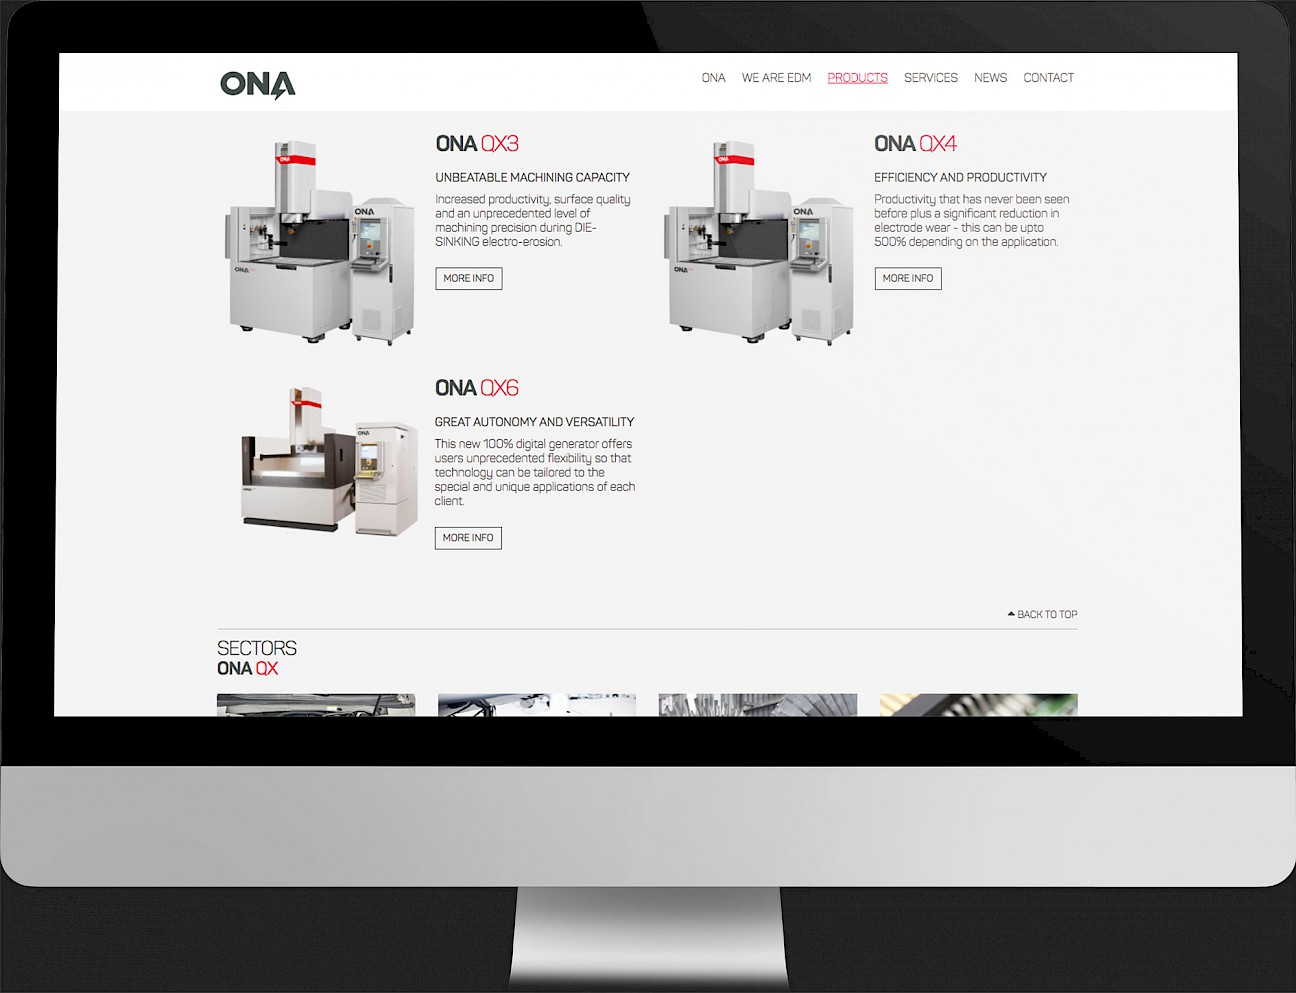 digital technology spaces website ona branding narrative 02 move design